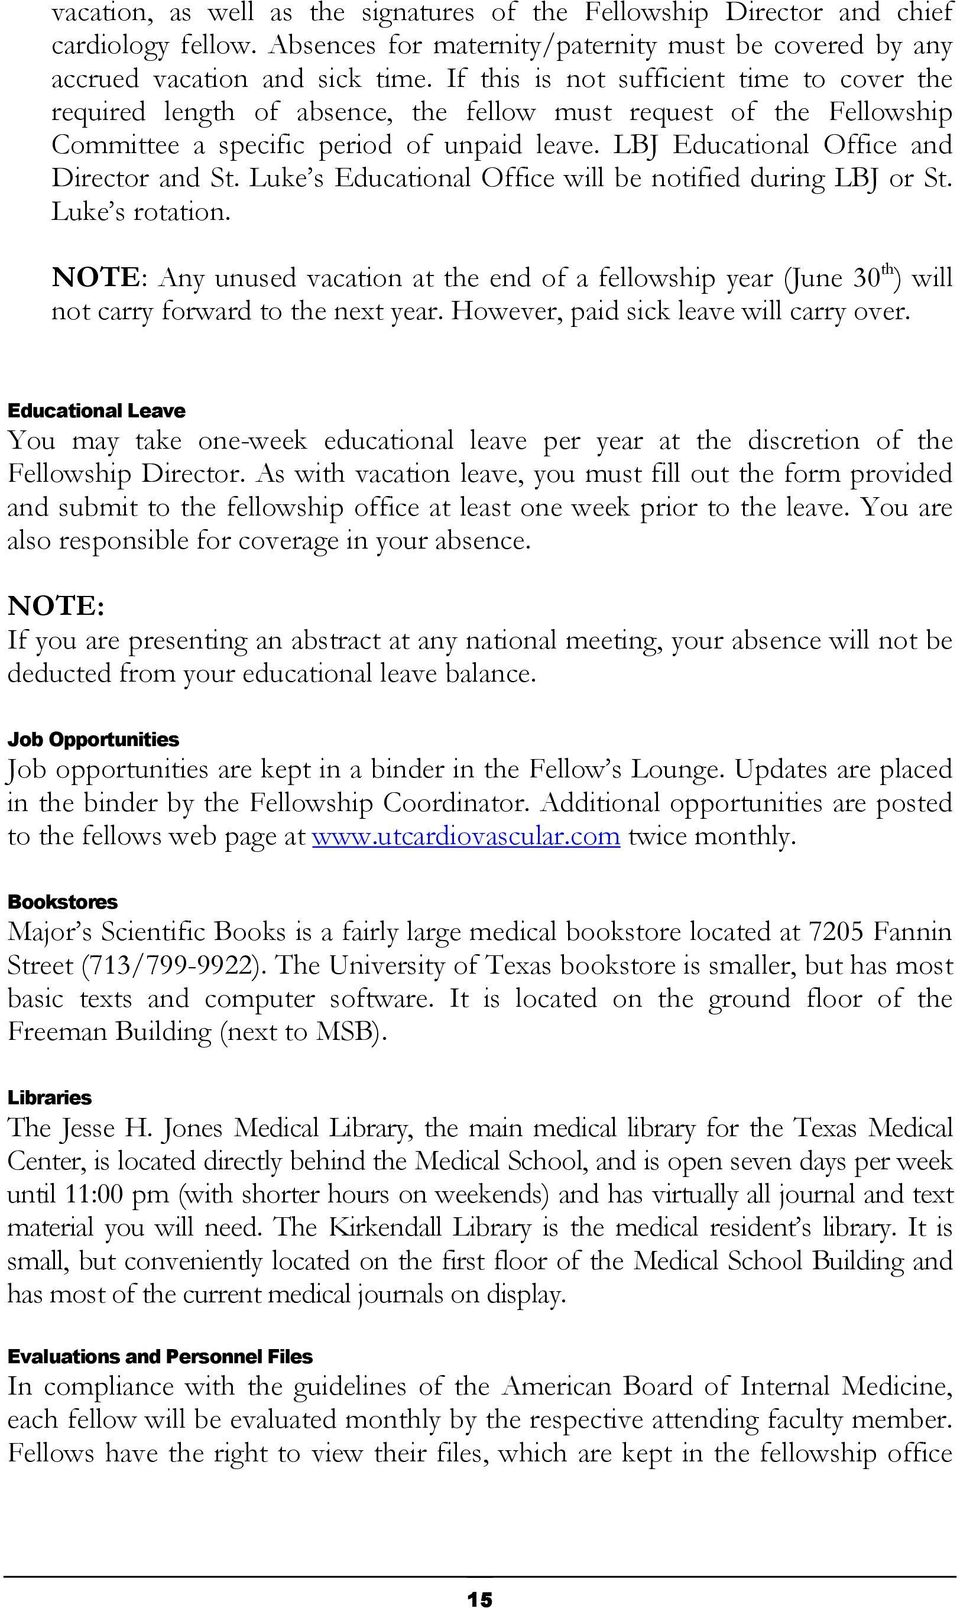 LBJ Educational Office and Director and St. Luke s Educational Office will be notified during LBJ or St. Luke s rotation.